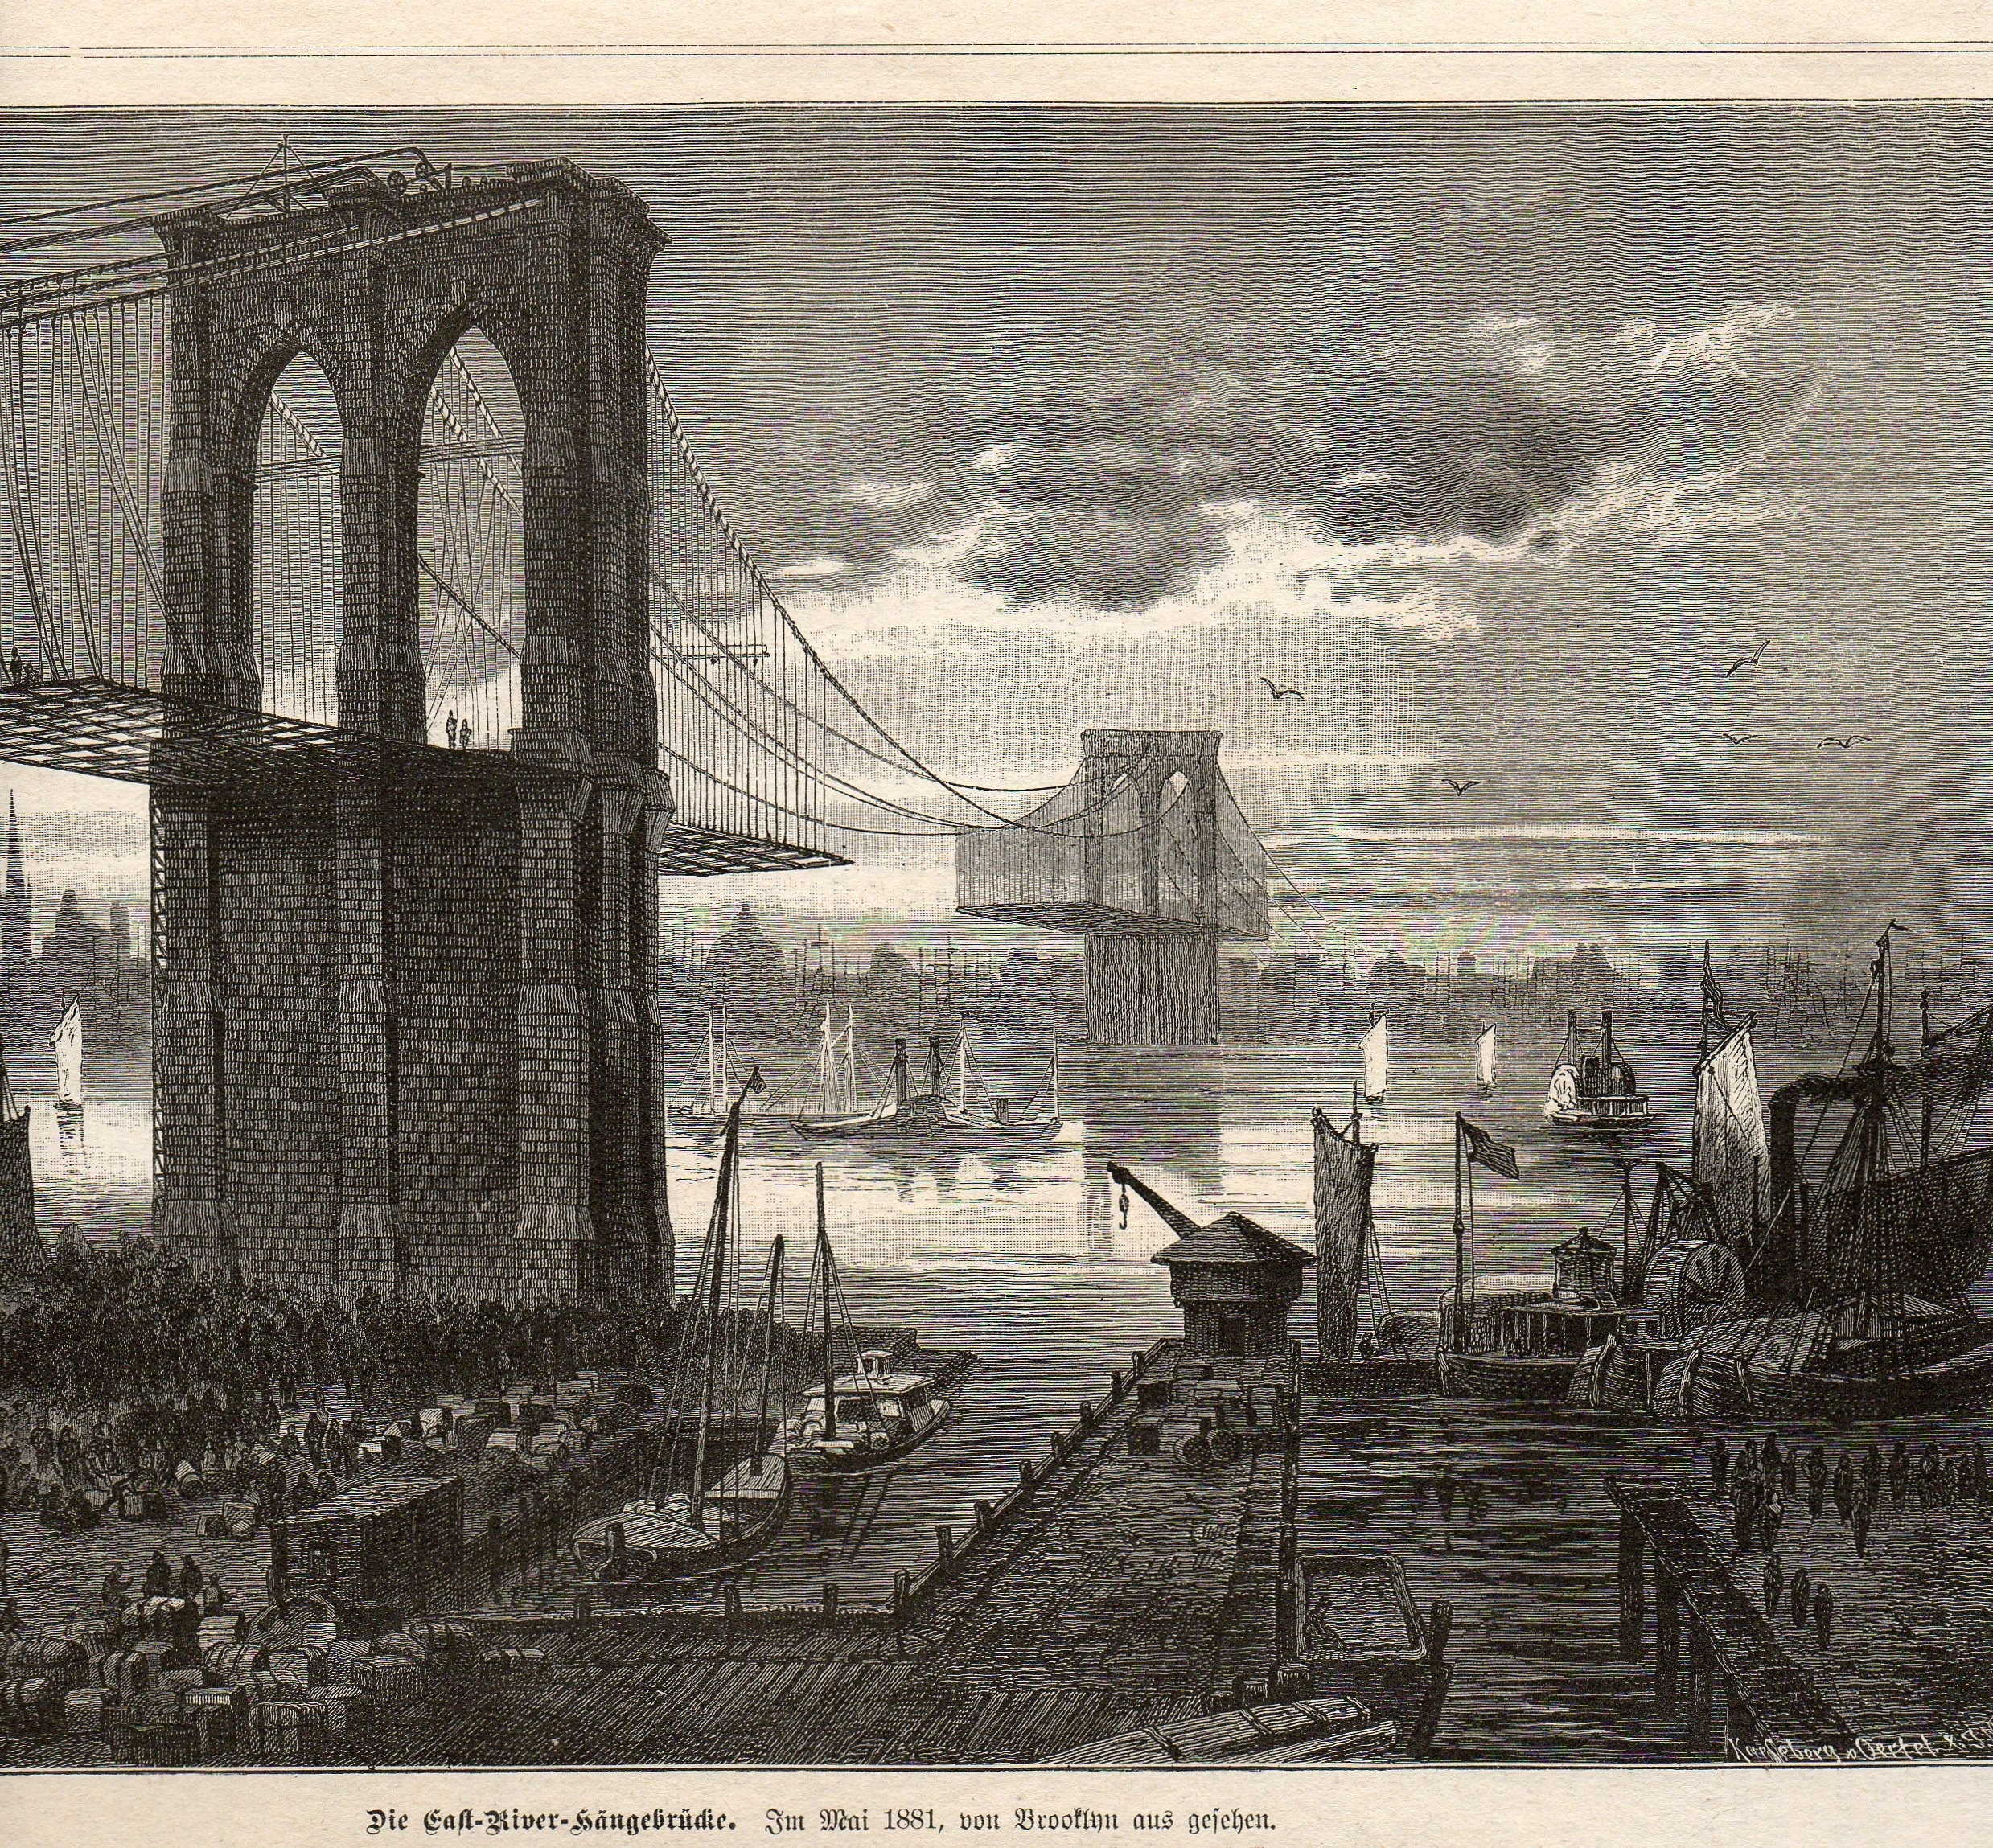 Top 10 secrets of the brooklyn bridge 6sqft the bridge needed to pass over the masts of ships and could not have piers or a drawbridge malvernweather Choice Image